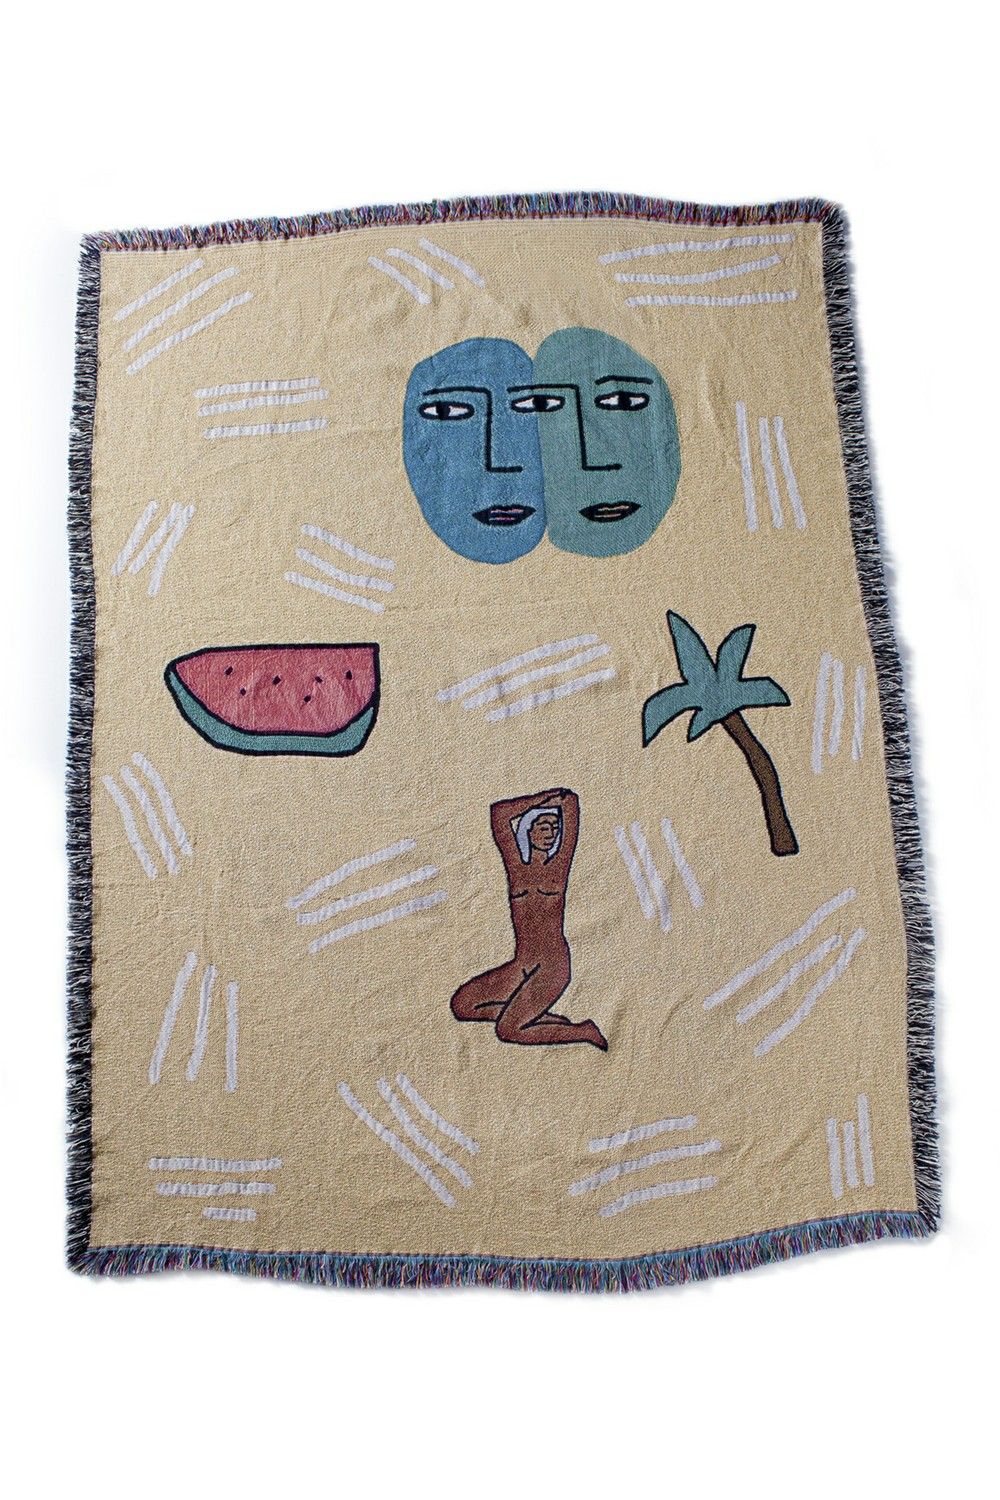 Beach Party Woven Throw via bfgfshop. Click on the image to see more!